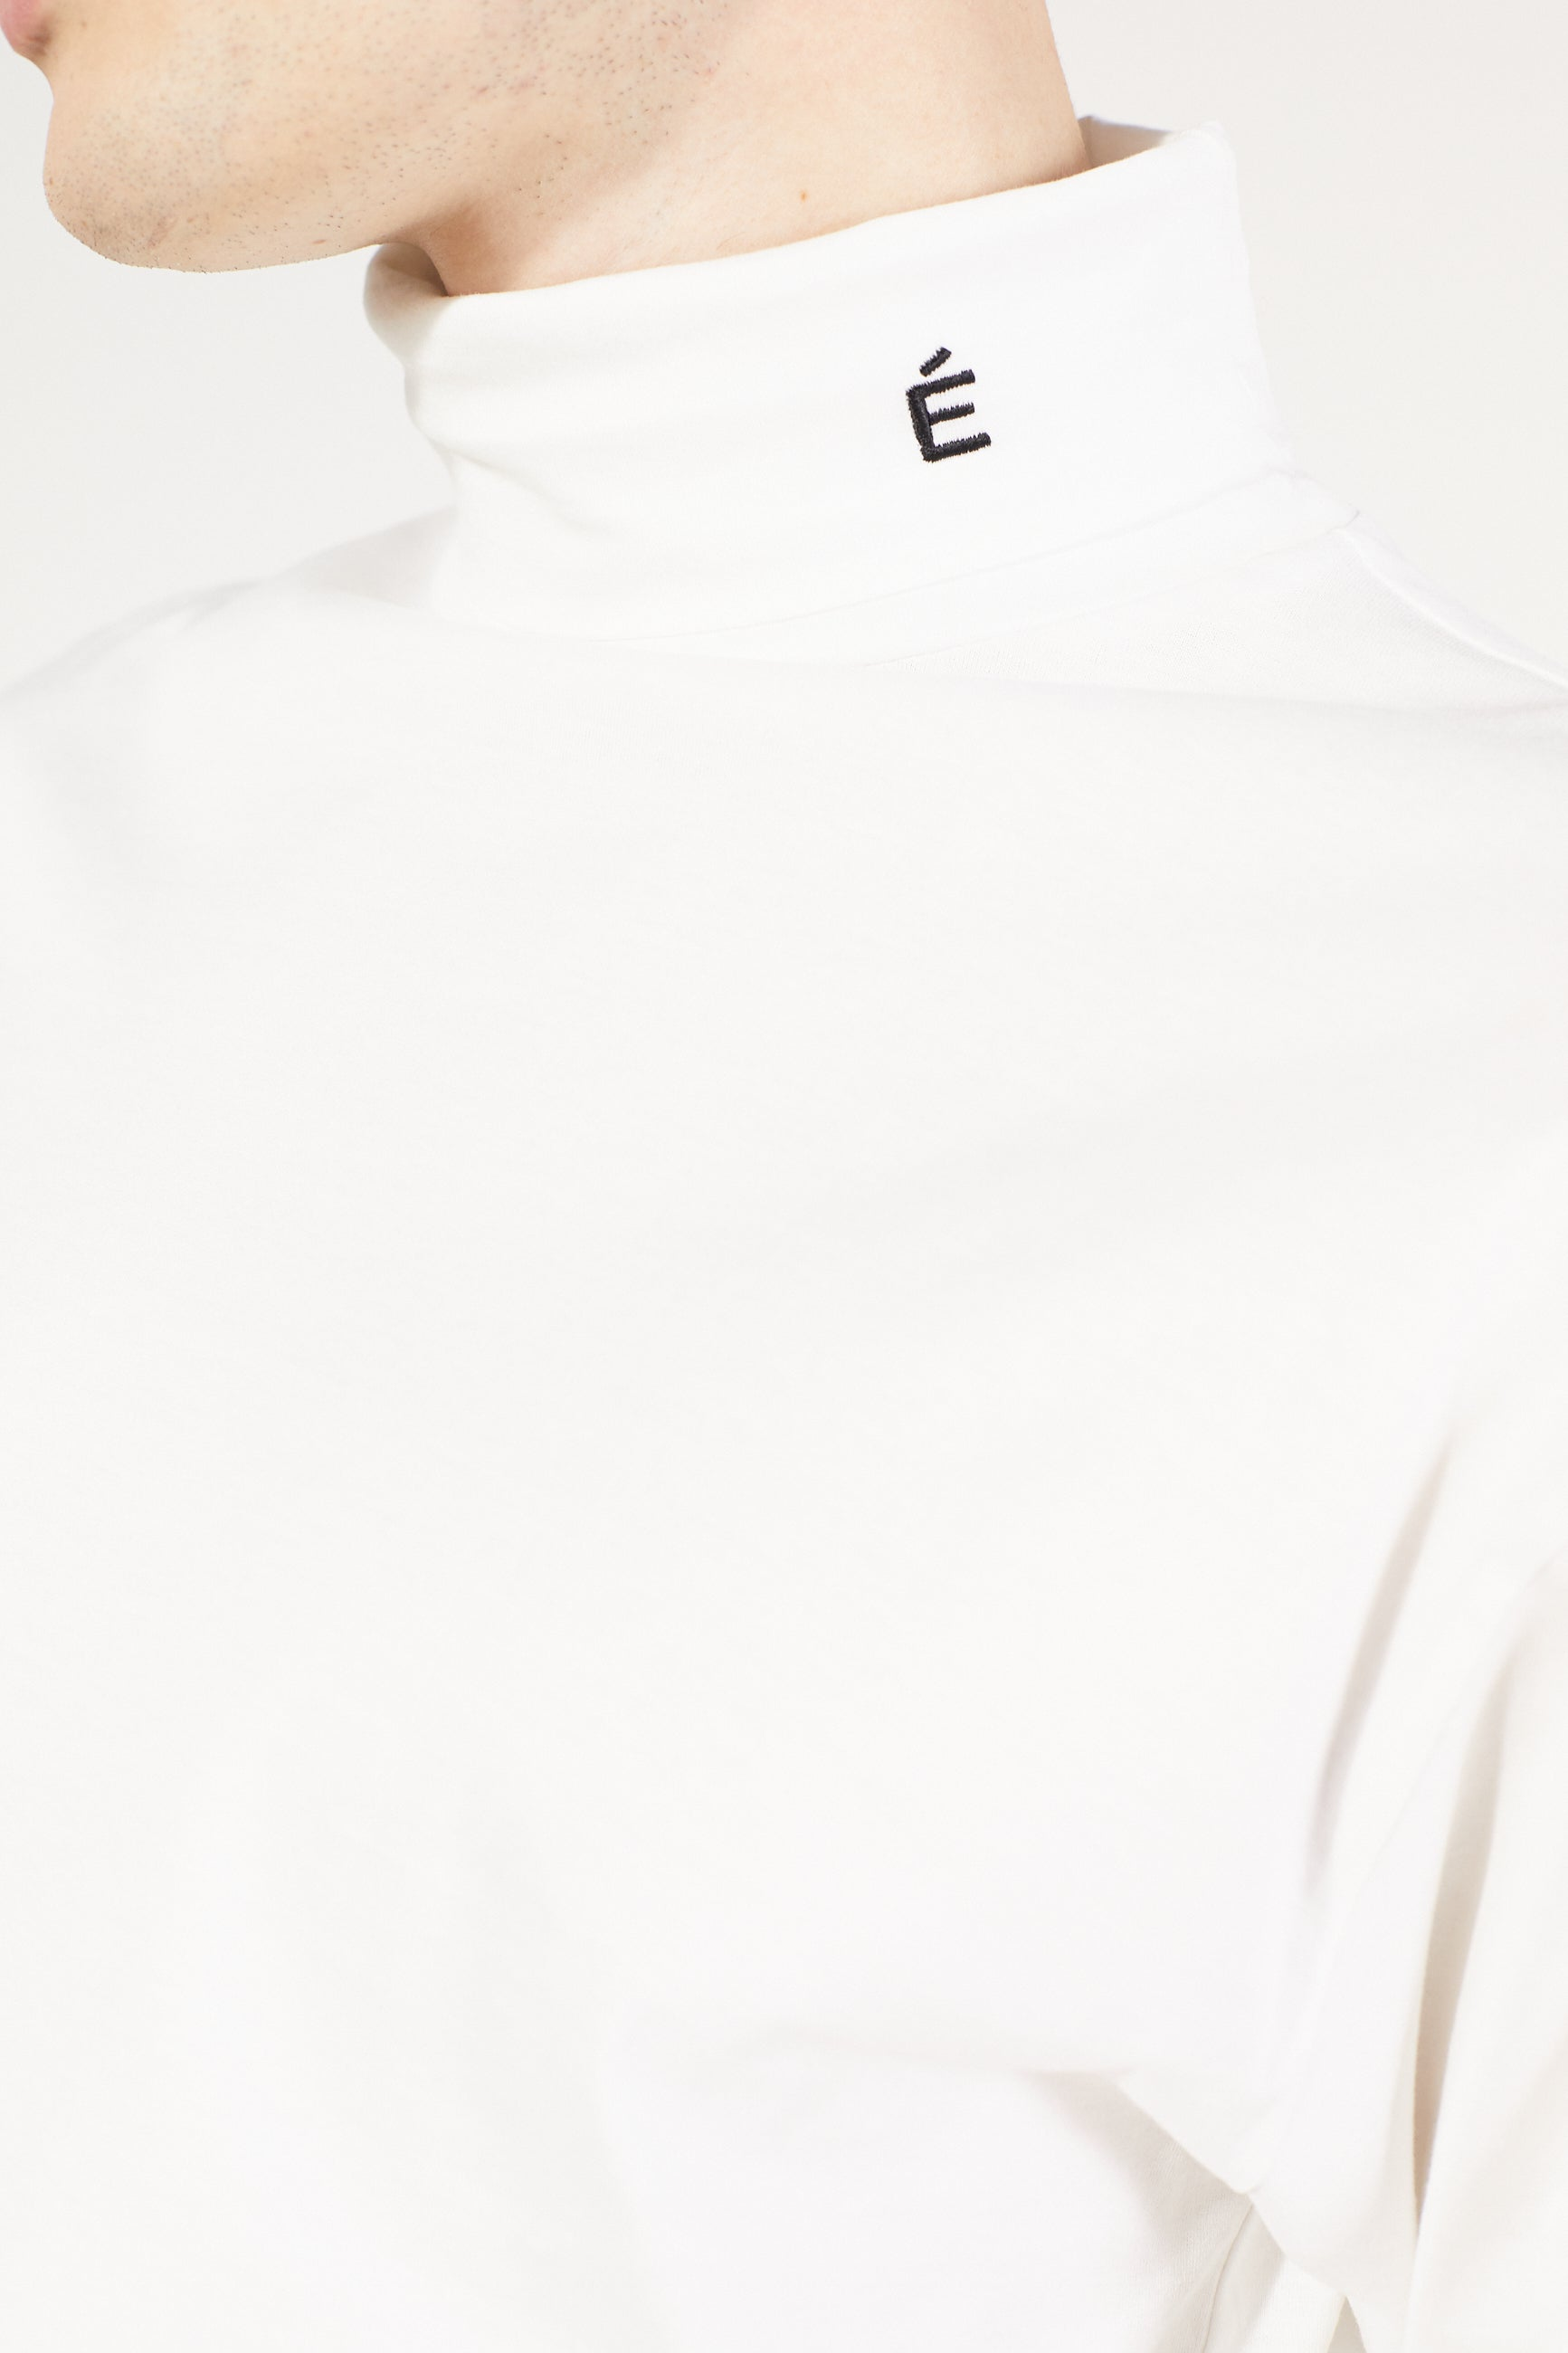 Études Award LS Small Accent White T-shirt 4